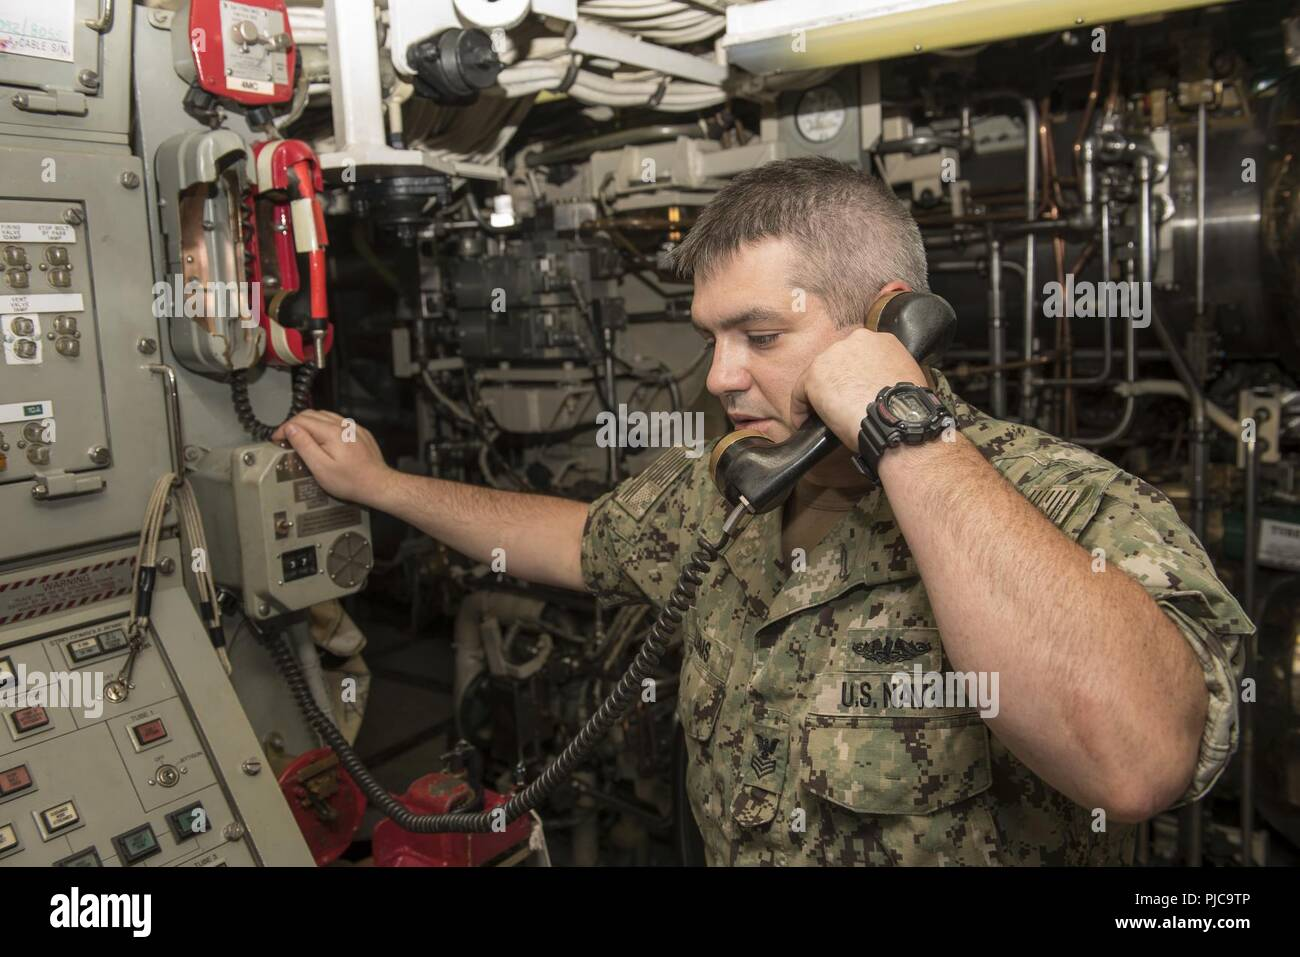 Machinist's Mate (Non-Nuclear, Submarine Weapons) 1st Class Norman Williams uses a sound-powered telephone in the torpedo room of the Ohio-class ballistic missile submarine USS Alaska (SSBN 732). Alaska is conducting routine maintenance inport at Naval Submarine Base Kings Bay. - Stock Image